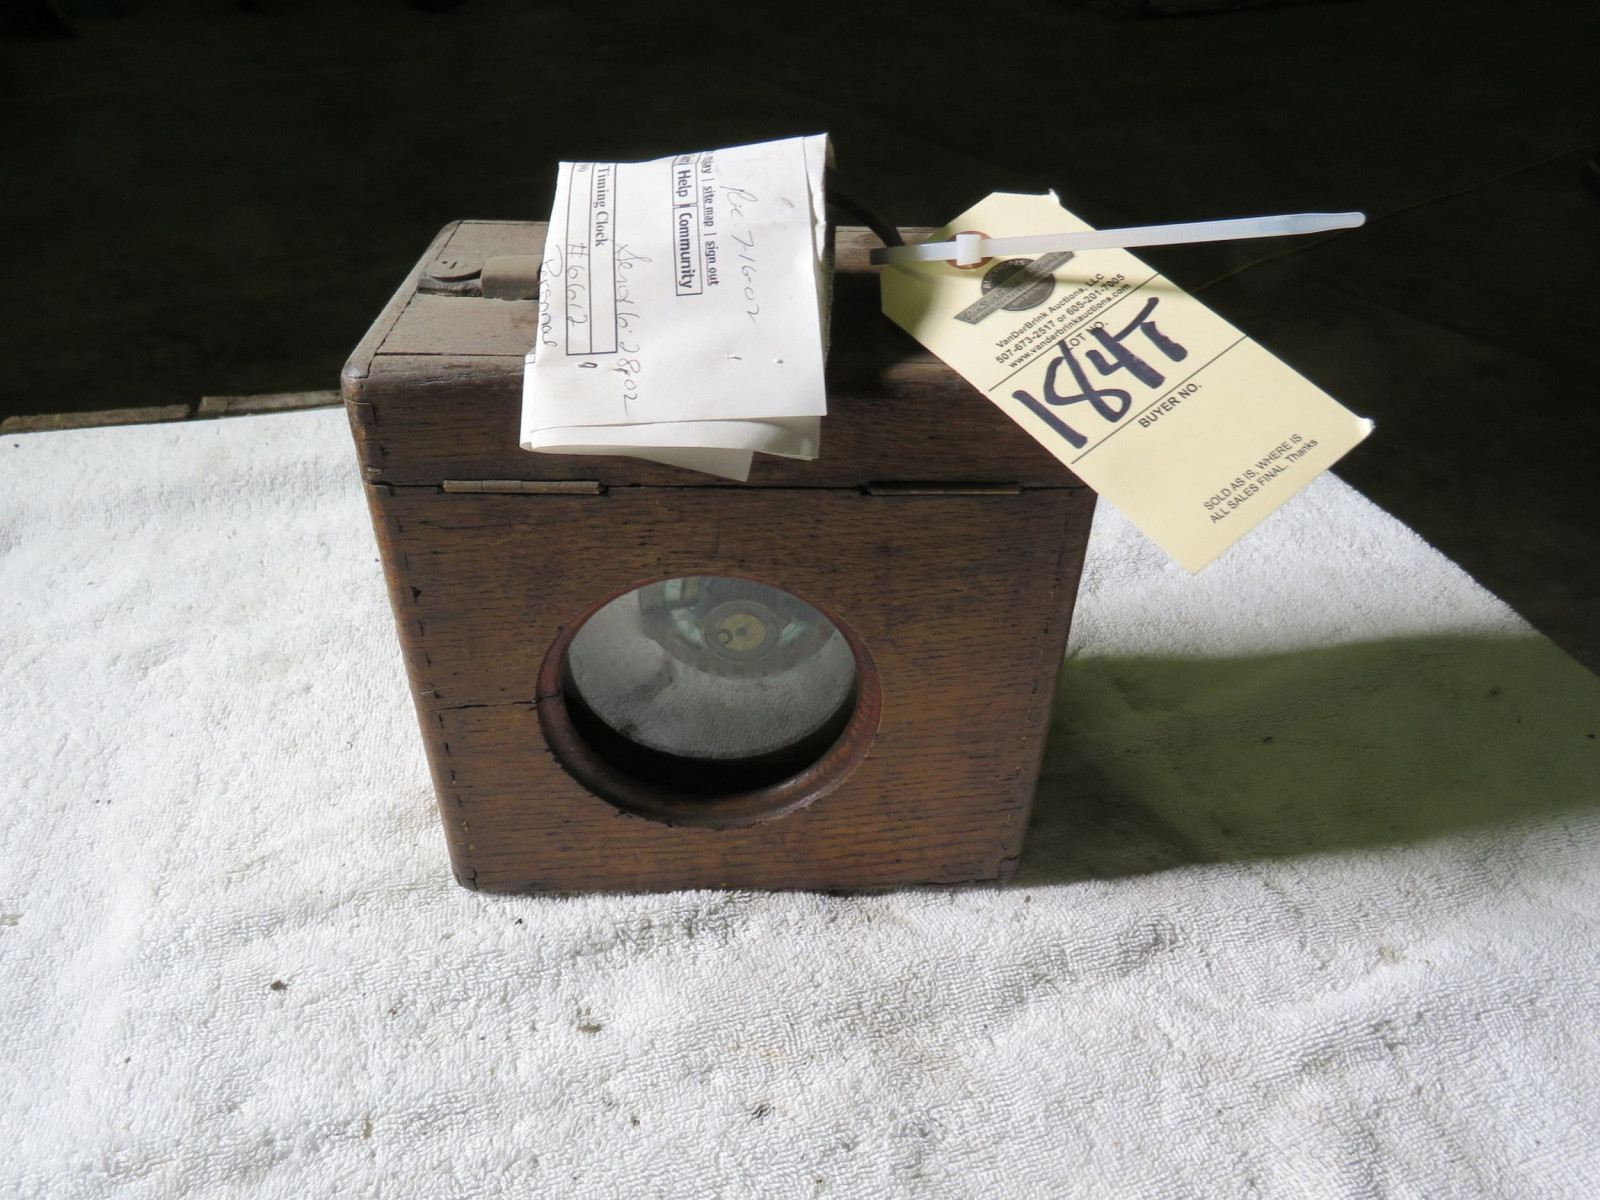 Midget Timing Box -Coulet Excelsior - Image 1